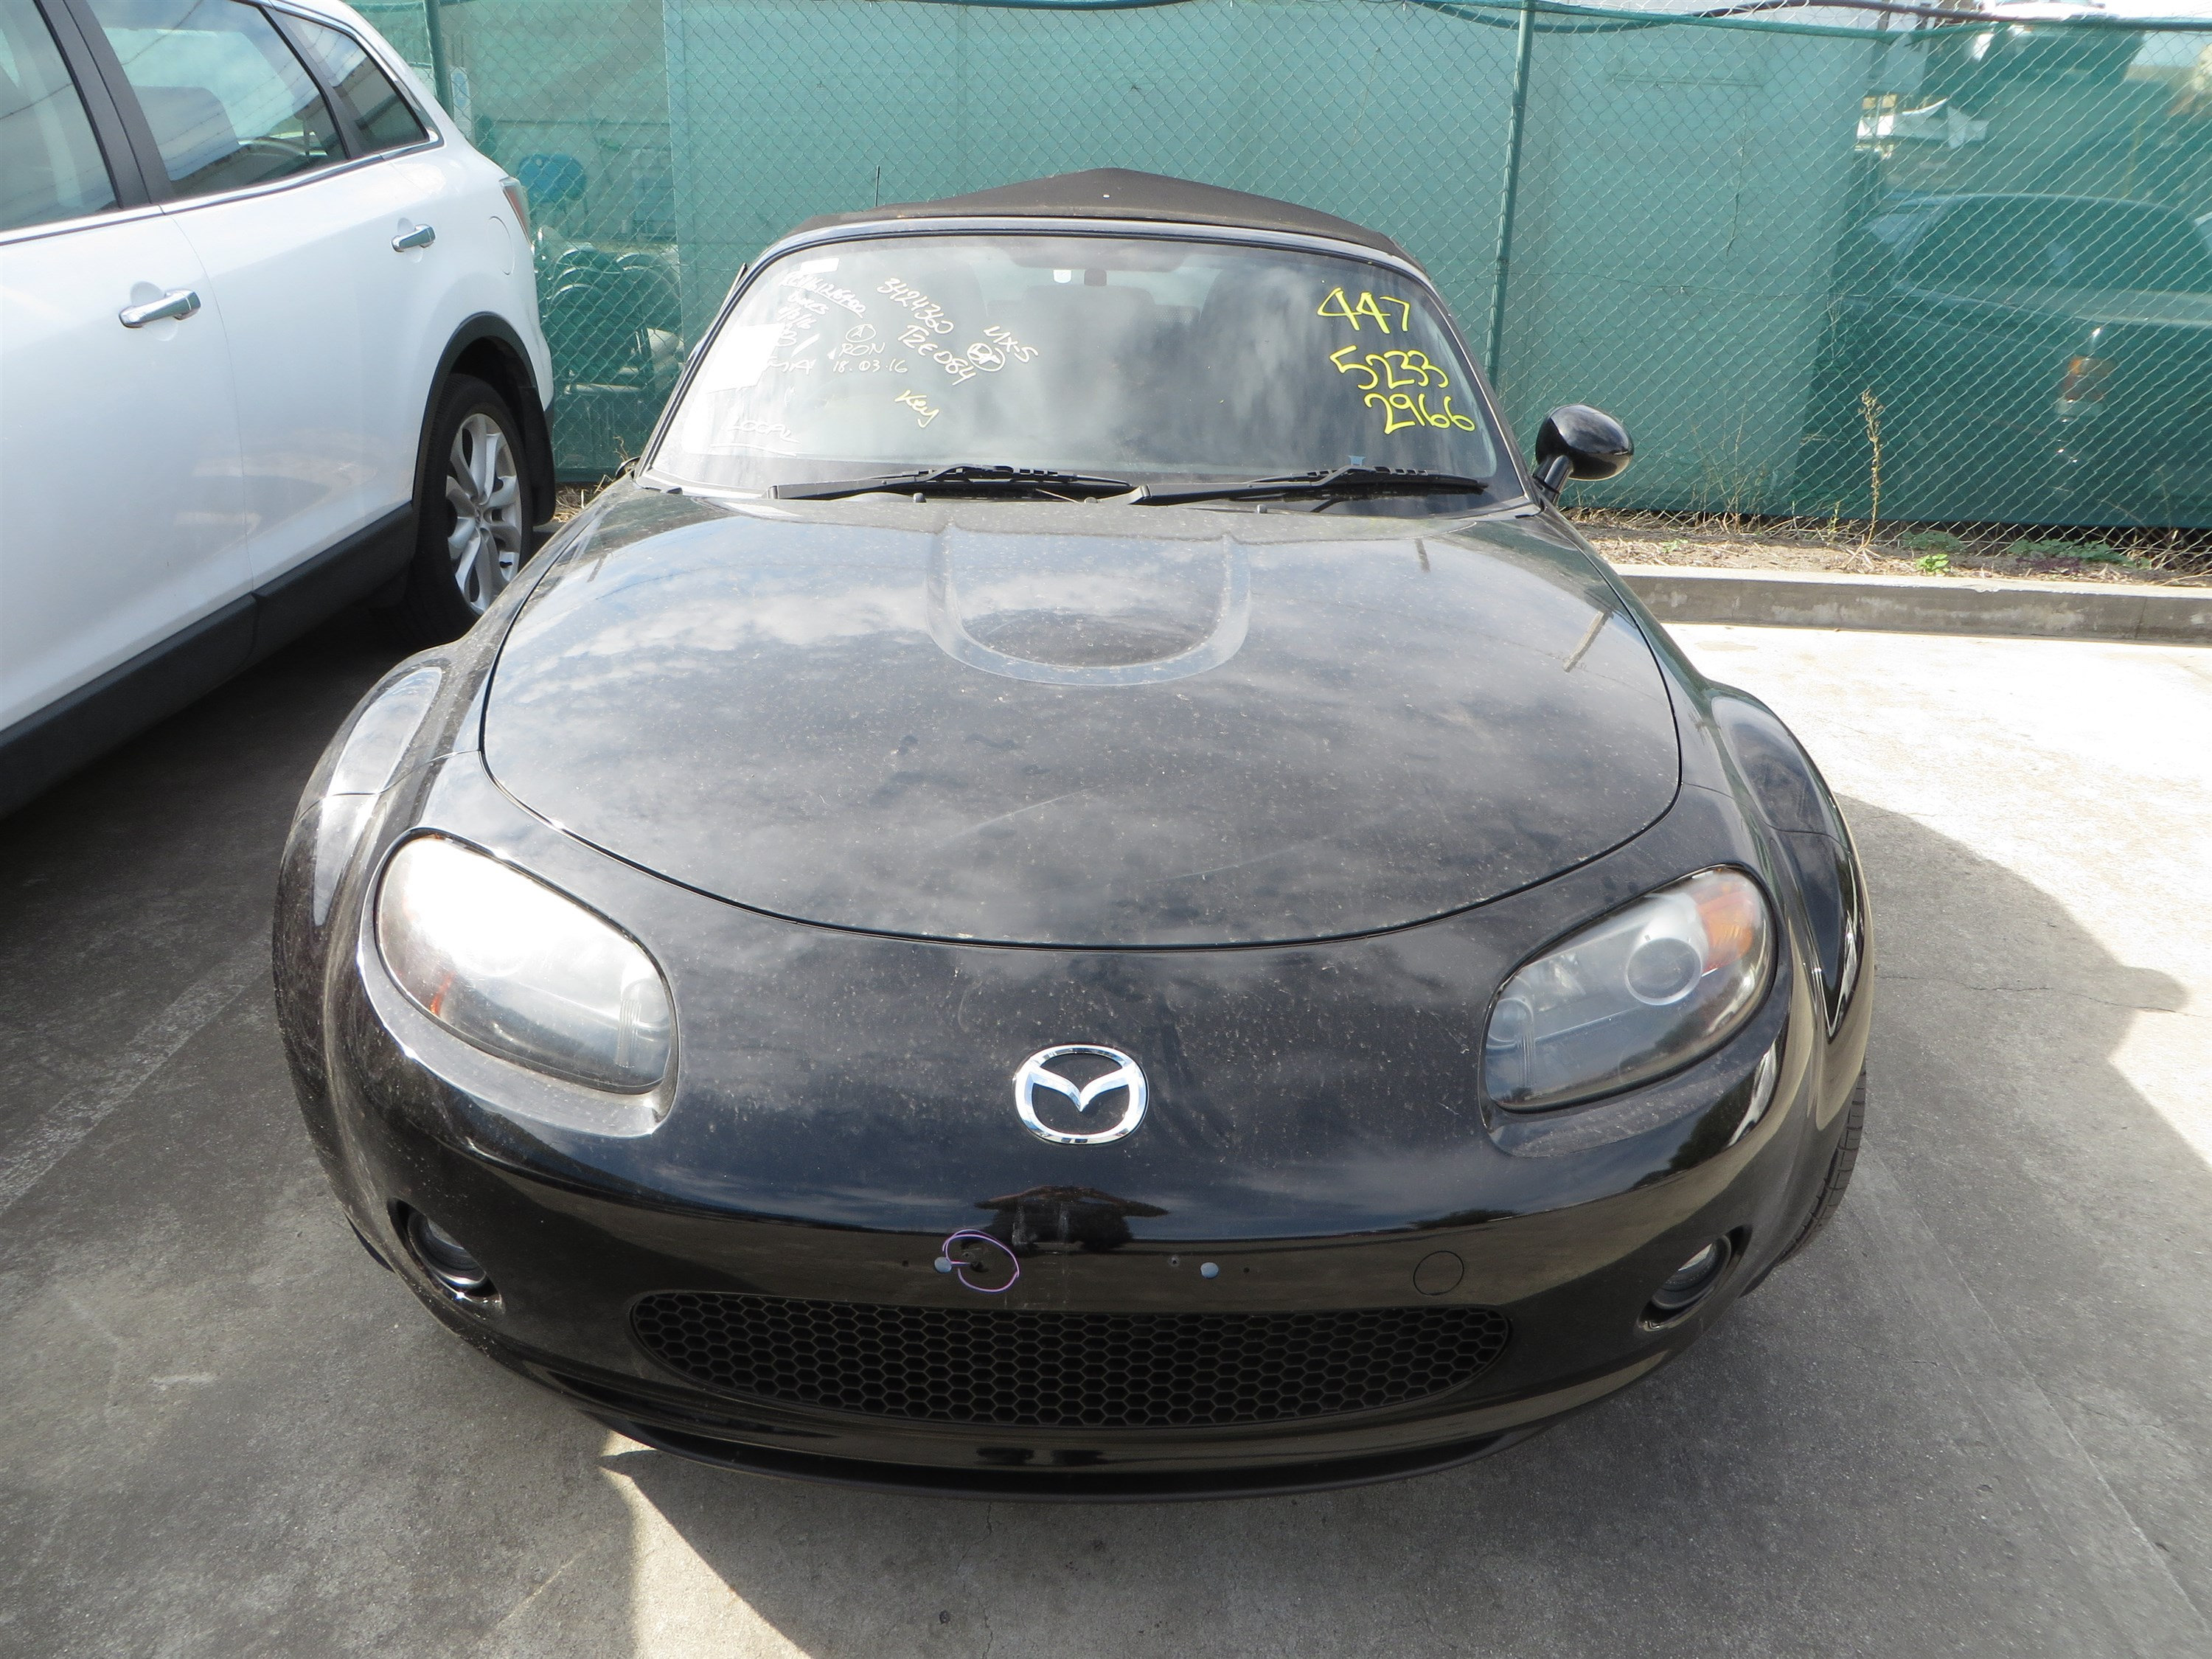 mazda mx5 parts mazda and honda spare parts. Black Bedroom Furniture Sets. Home Design Ideas